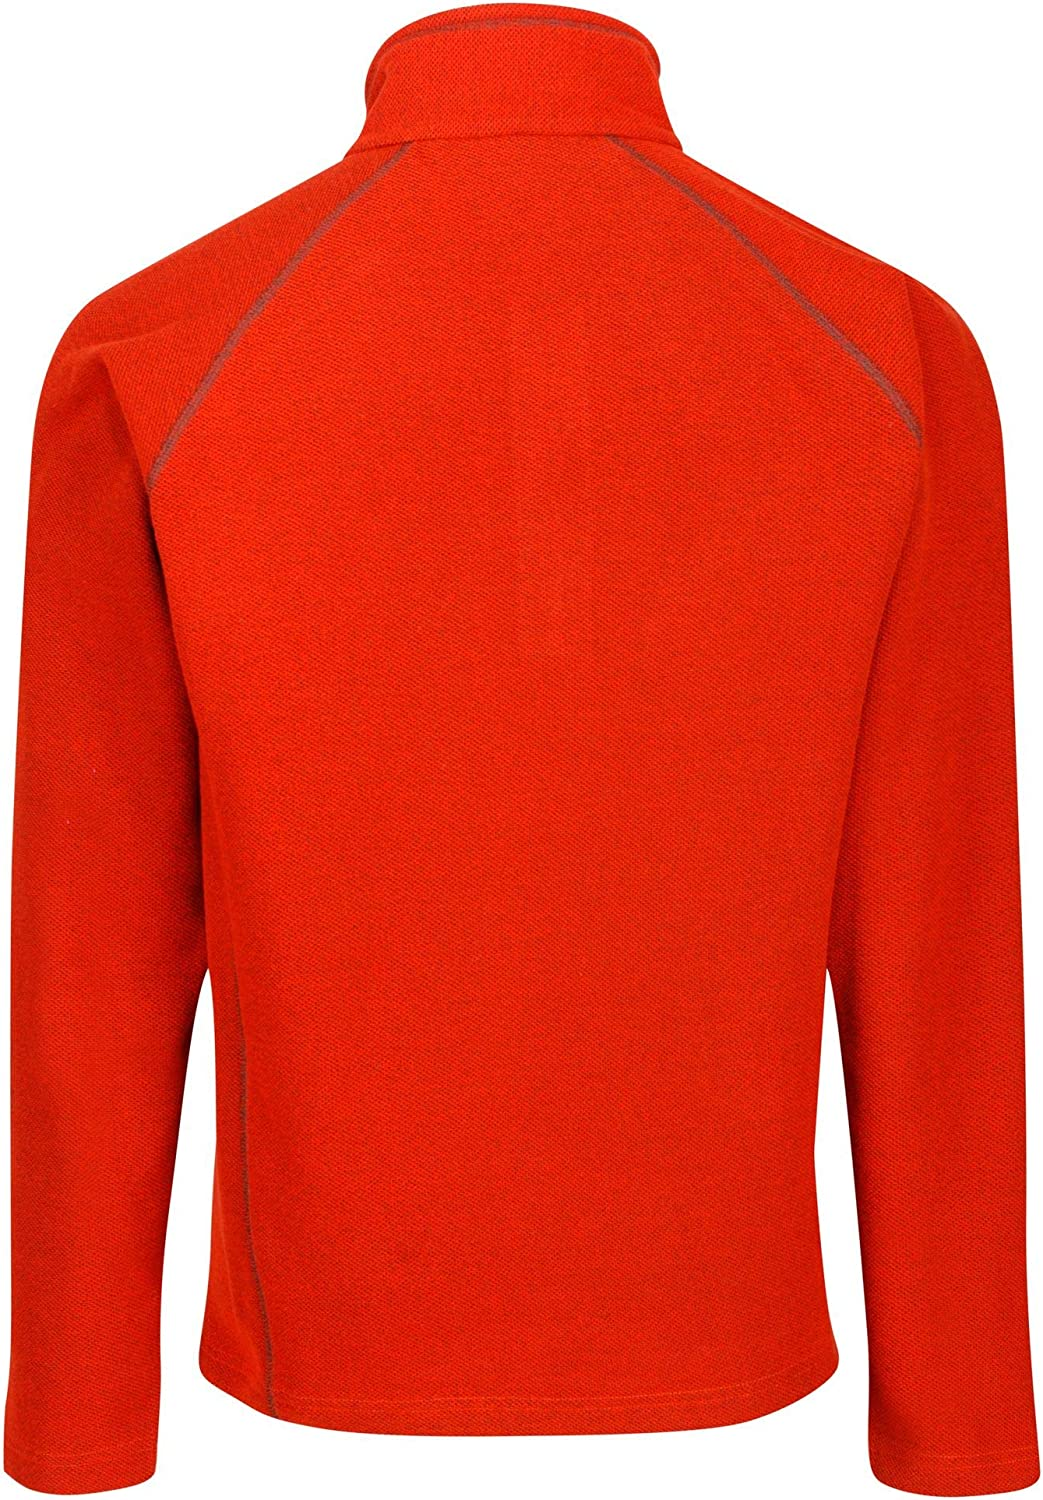 Regatta Kenger Half Zip Fleece Top